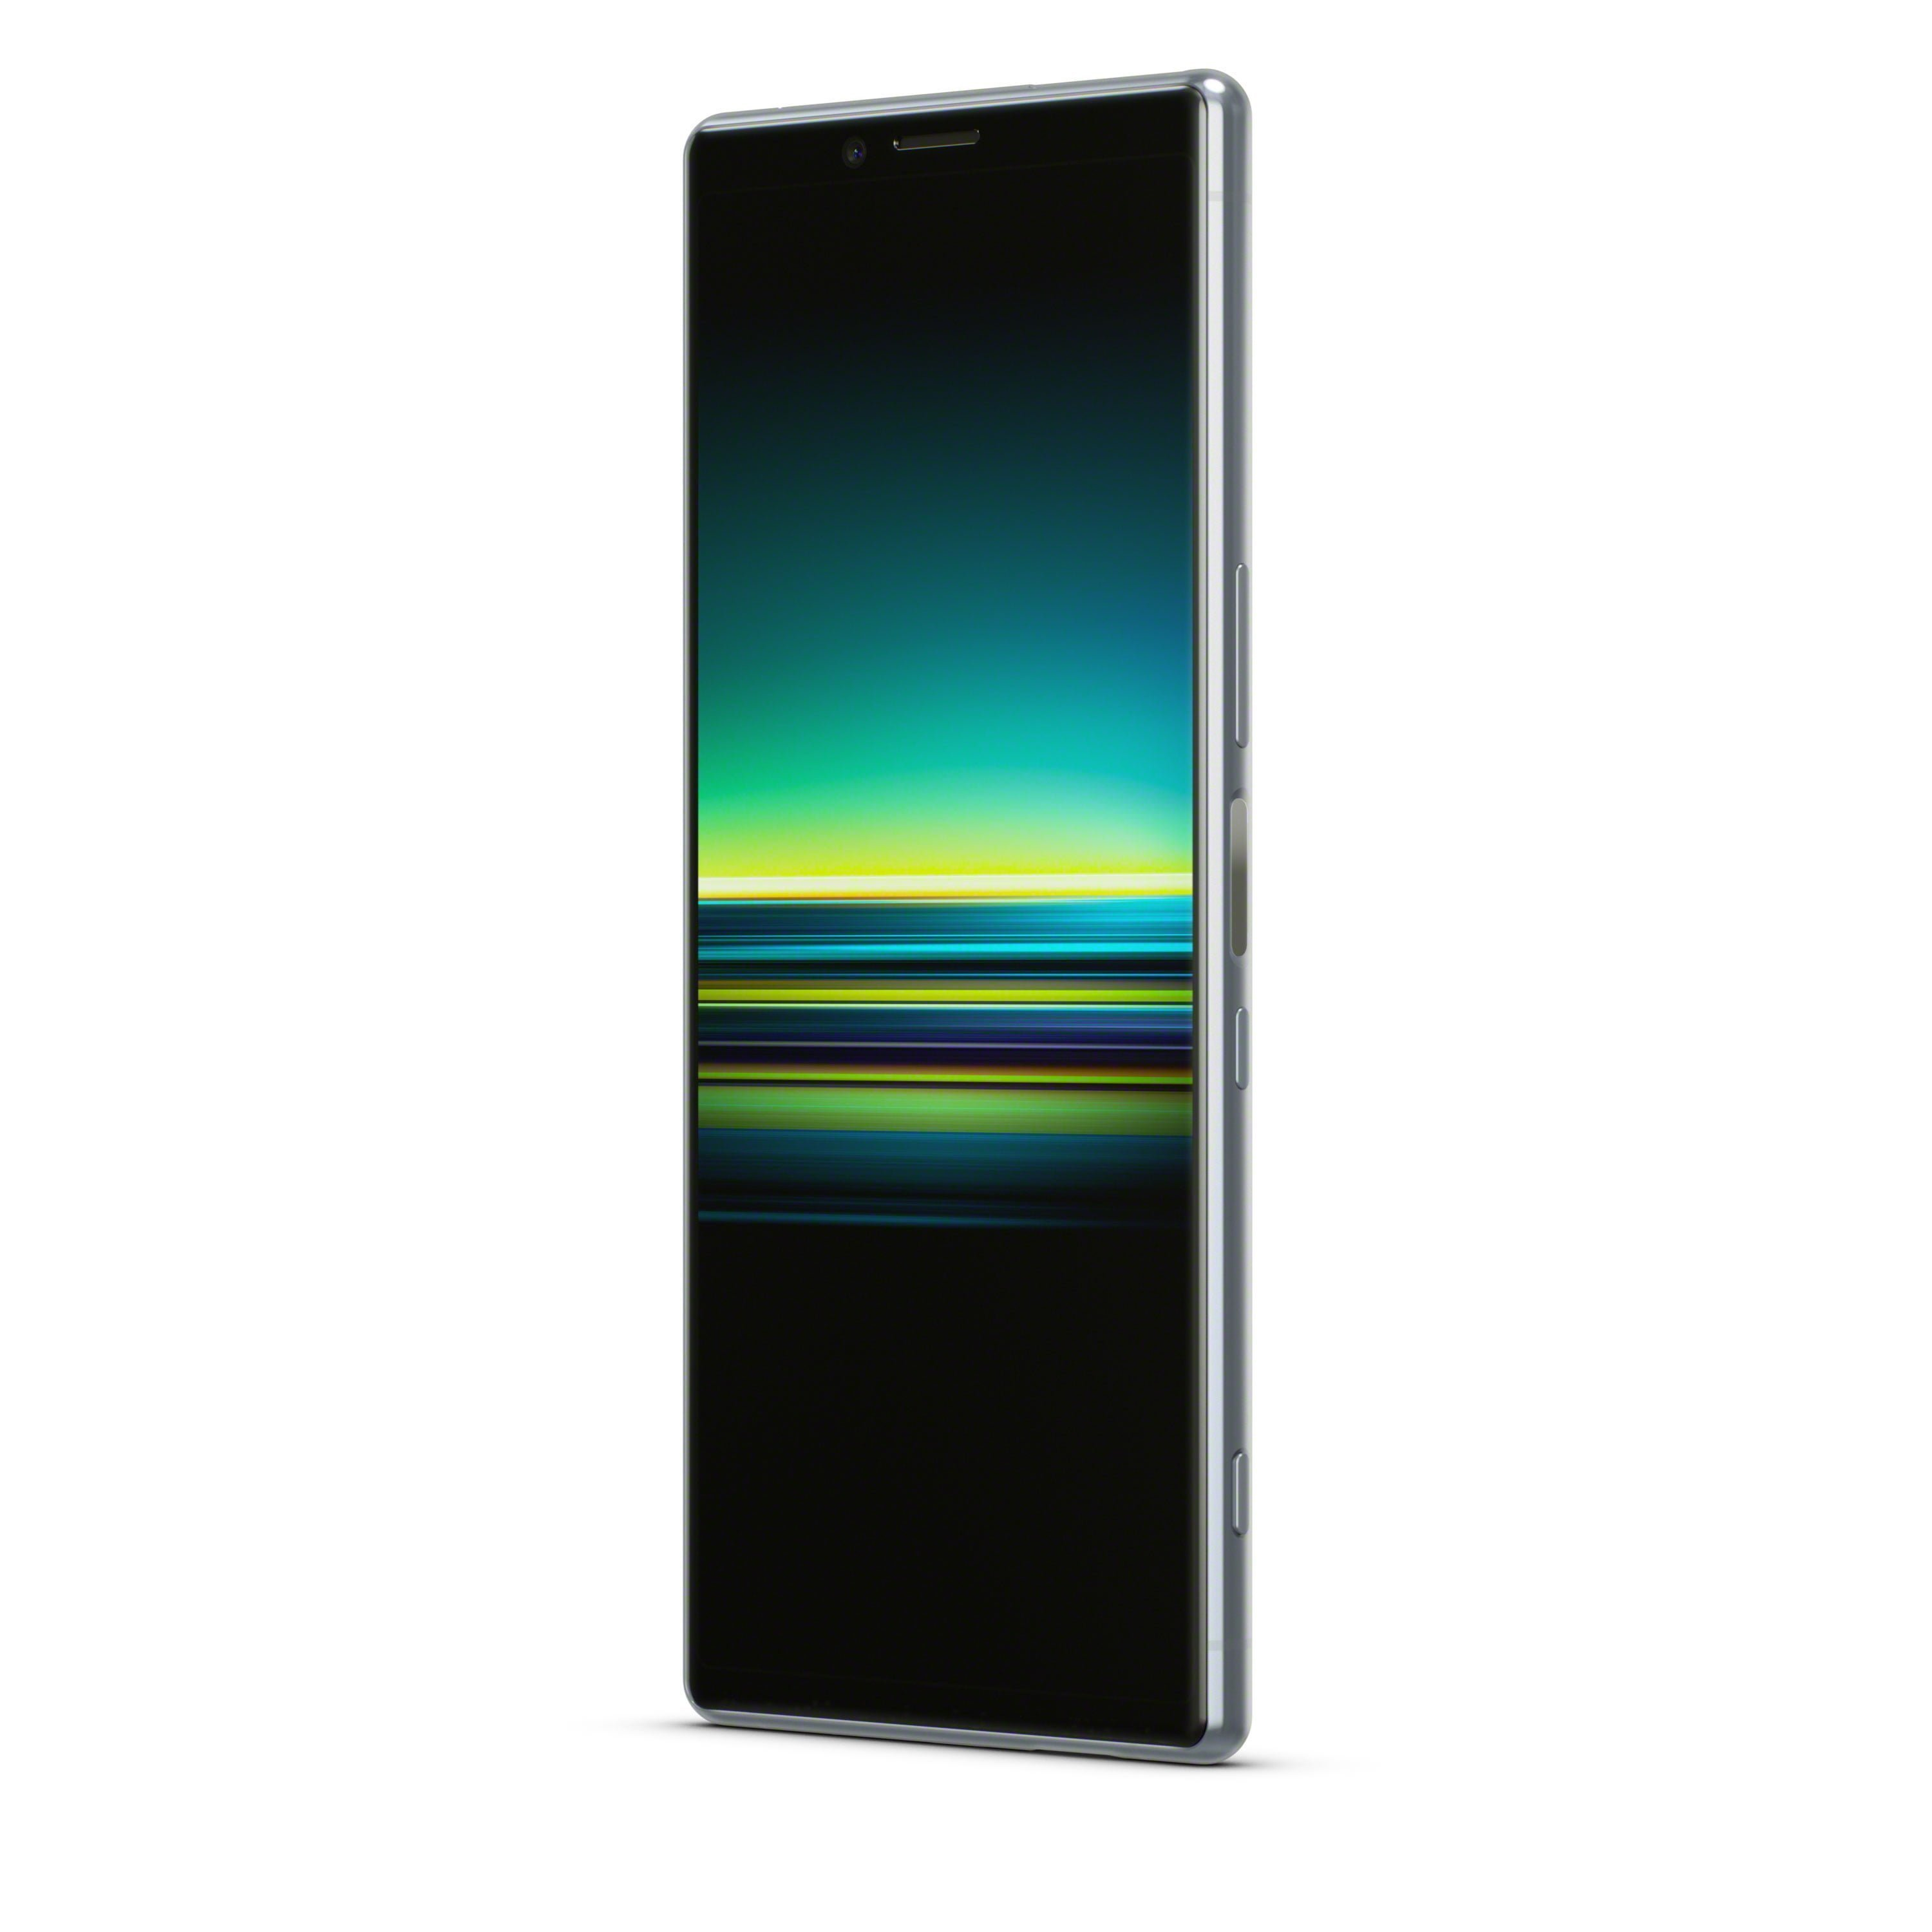 "MWC 2019: Sony Xperia 1 vorgestellt – 6,5"" 4K HDR OLED Display im 21:9 CinemaWide Format 9 techboys.de • smarte News, auf den Punkt! MWC 2019: Sony Xperia 1 vorgestellt – 6,5"" 4K HDR OLED Display im 21:9 CinemaWide Format"